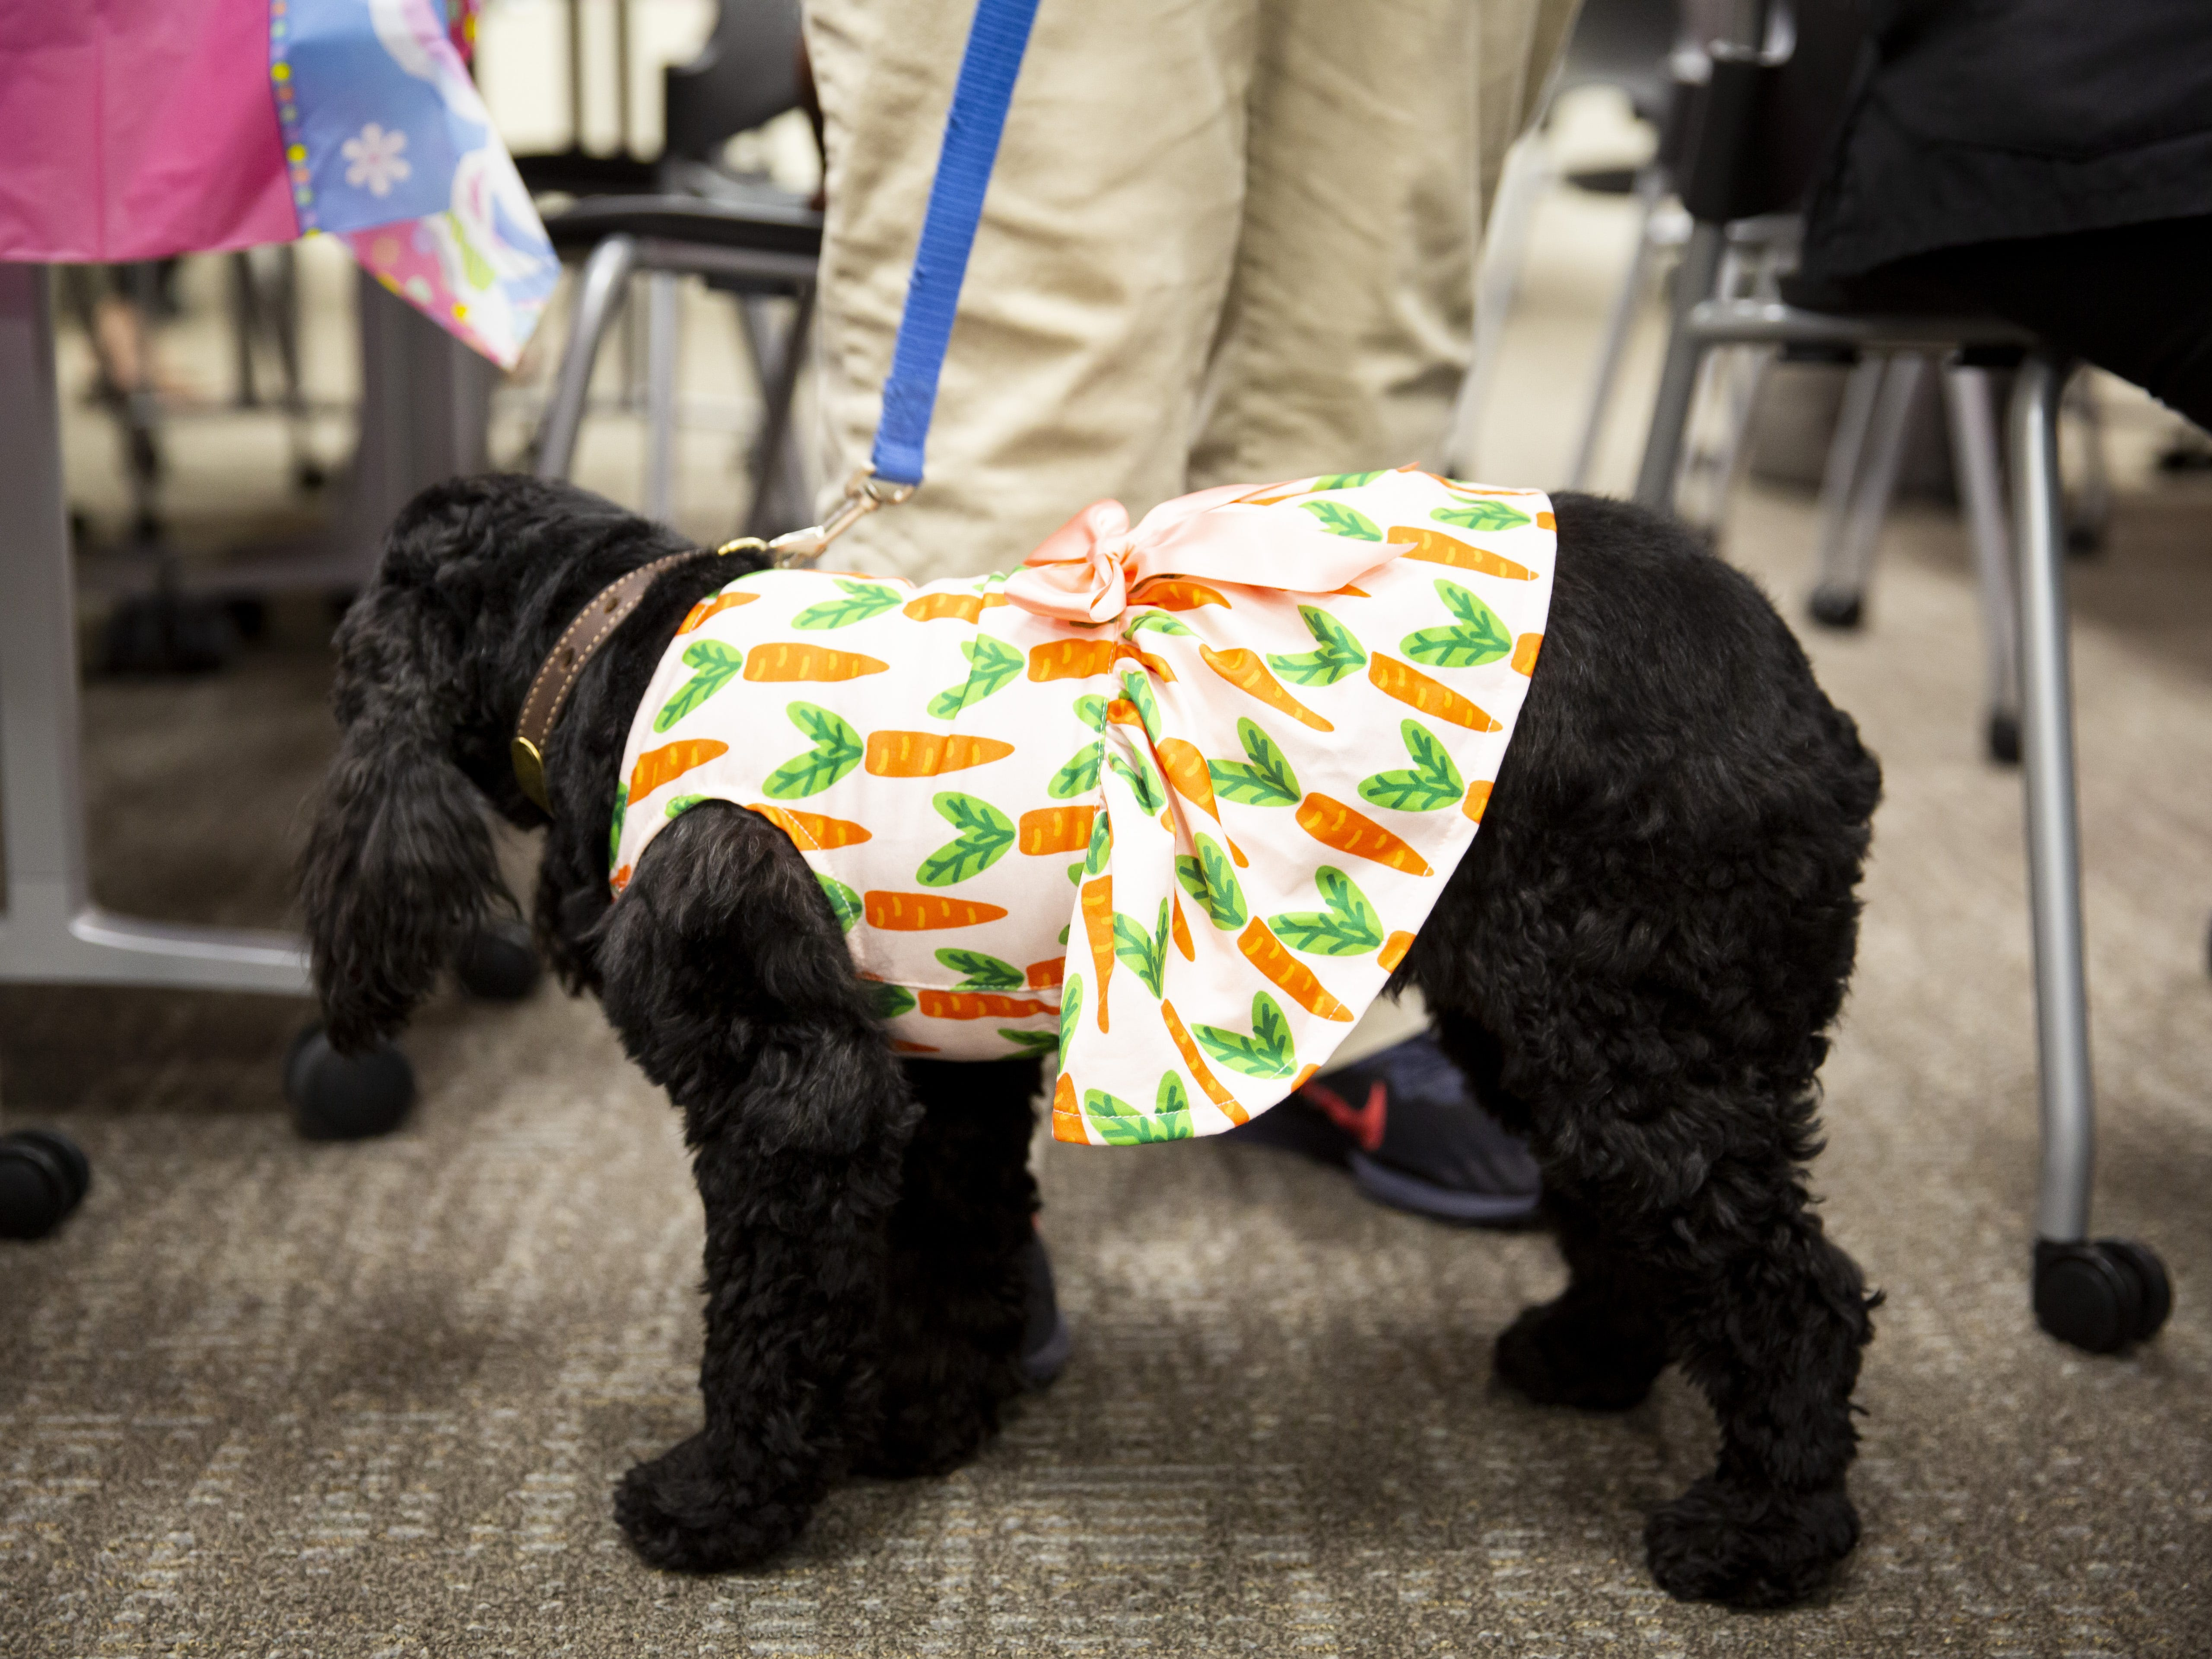 The therapy dog Lacey wears a dress with carrots on it at the Preemie NICU Reunion at Banner University Medical Center on April 13, 2019.